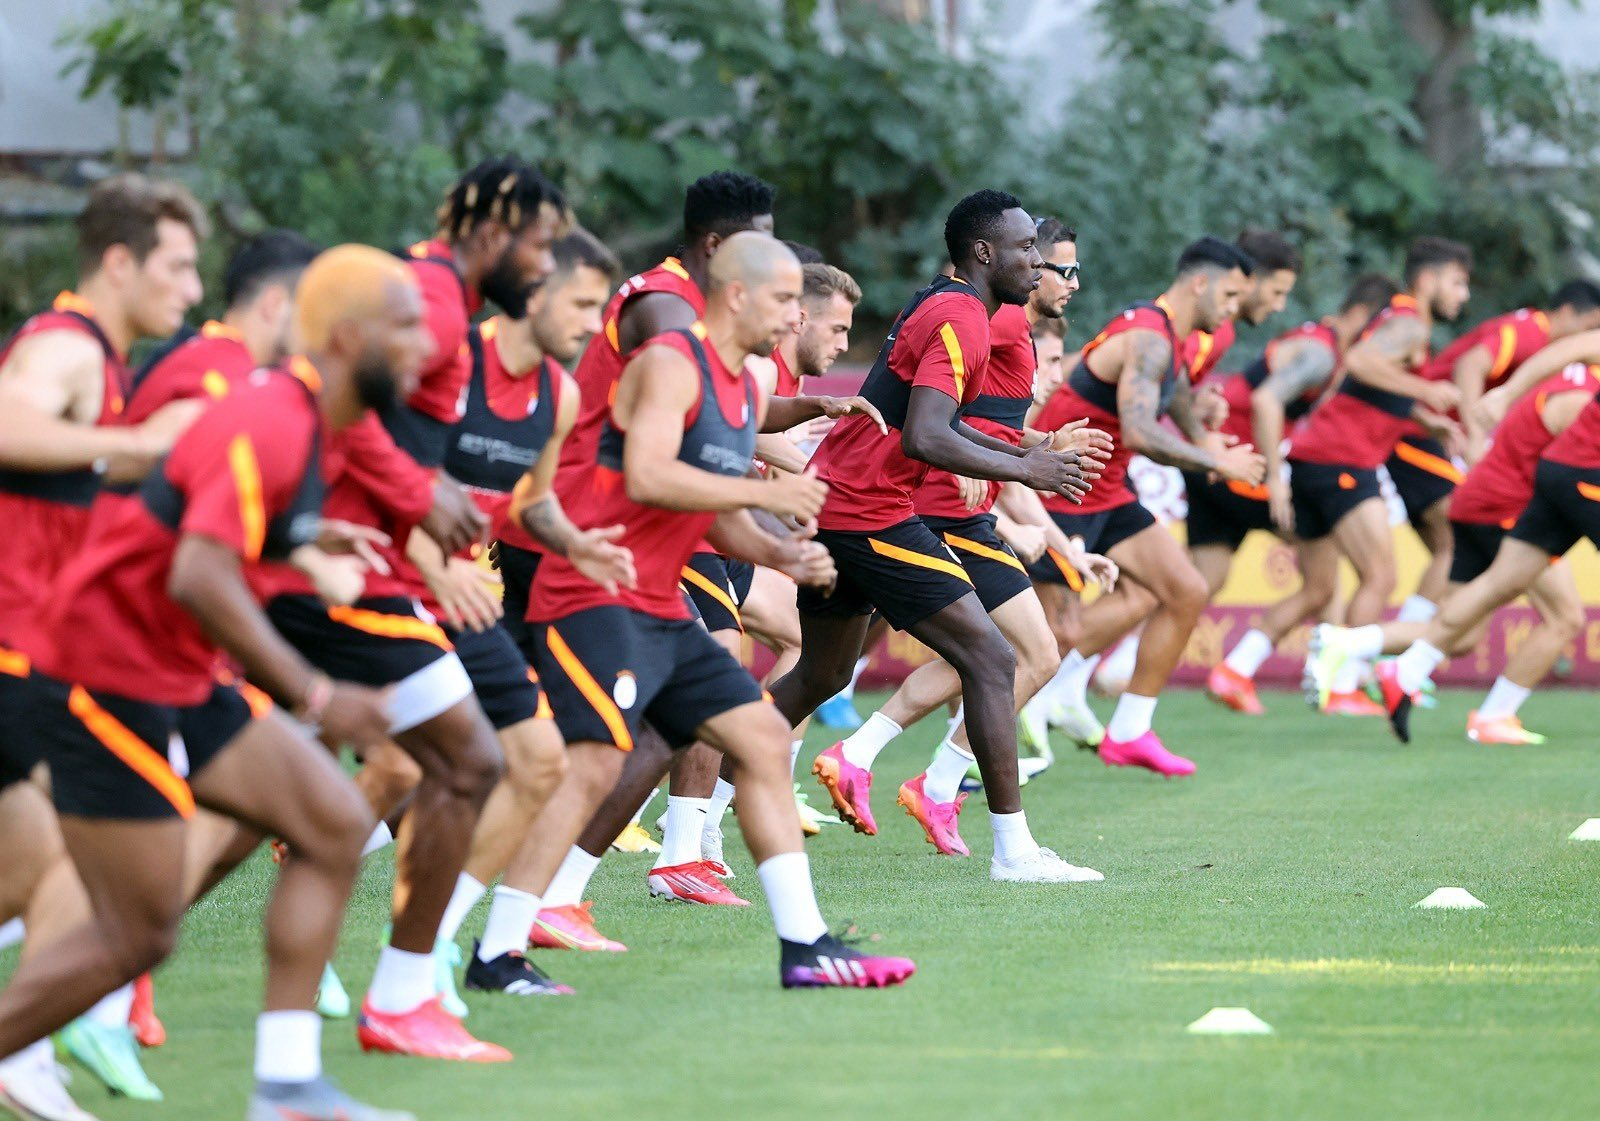 Galatasaray players take part in a training session ahead of their UEFA Champions League second qualifying round match against PSV Eindhoven, Istanbul, Turkey, July 19, 2021. (DHA Photo)